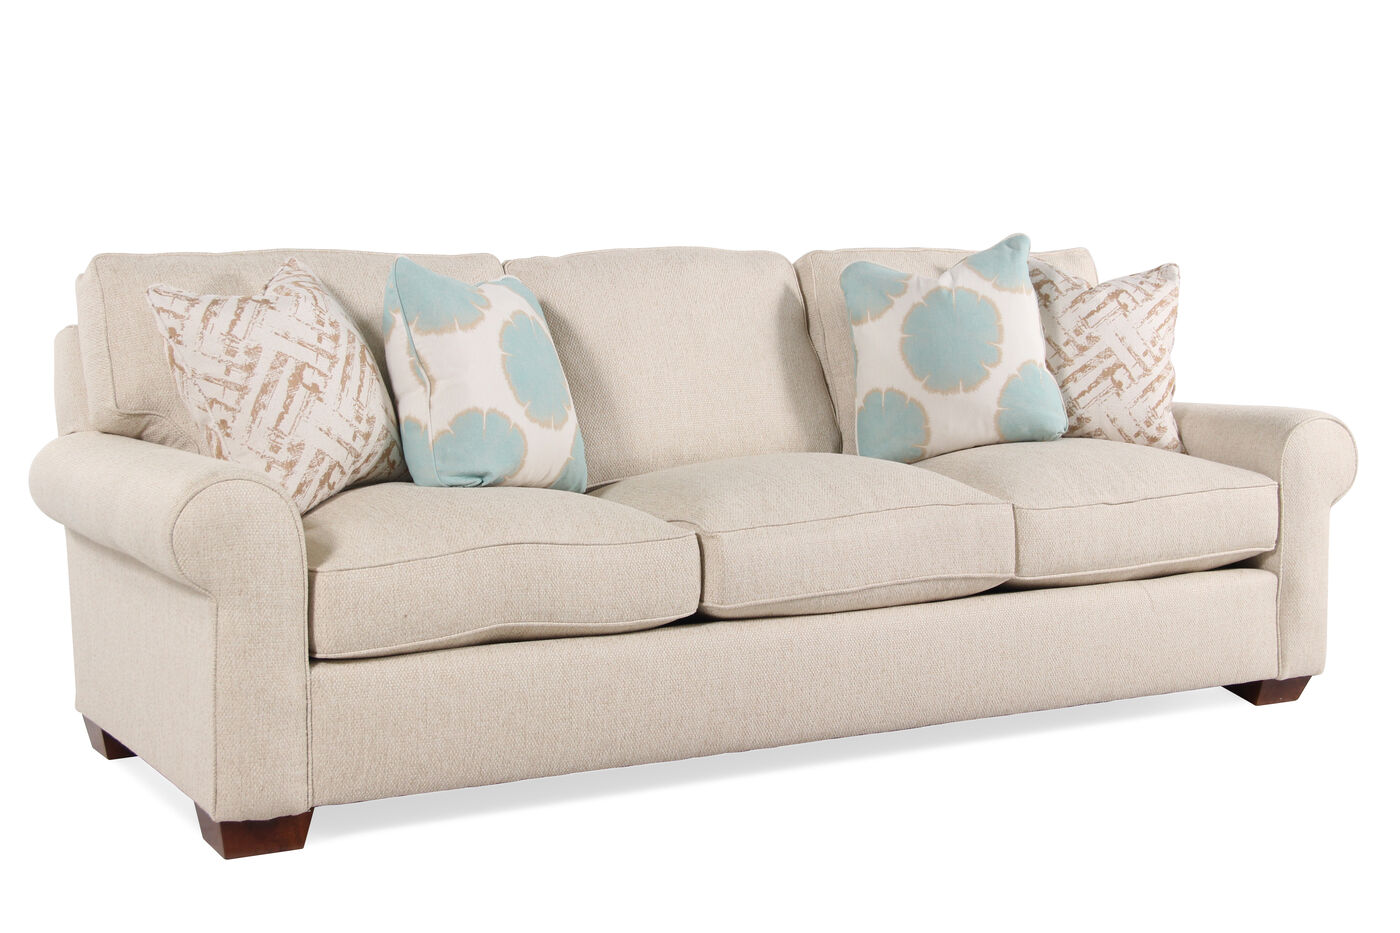 Transitional low profile 103 sofa in cream mathis for Low height sectional sofa